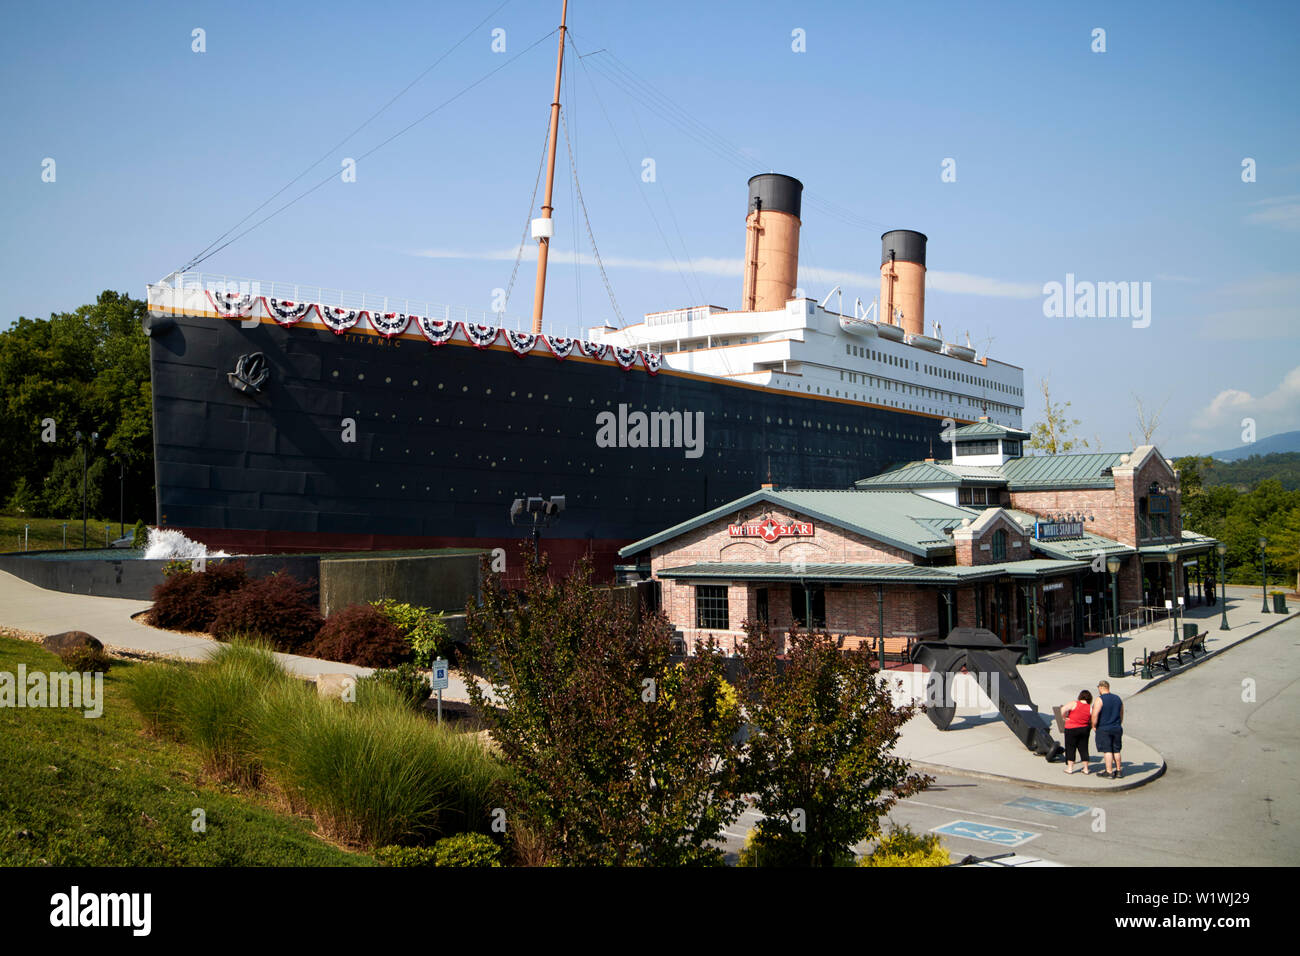 The titanic museum attraction Pigeon Forge, Tennessee, USA - Stock Image